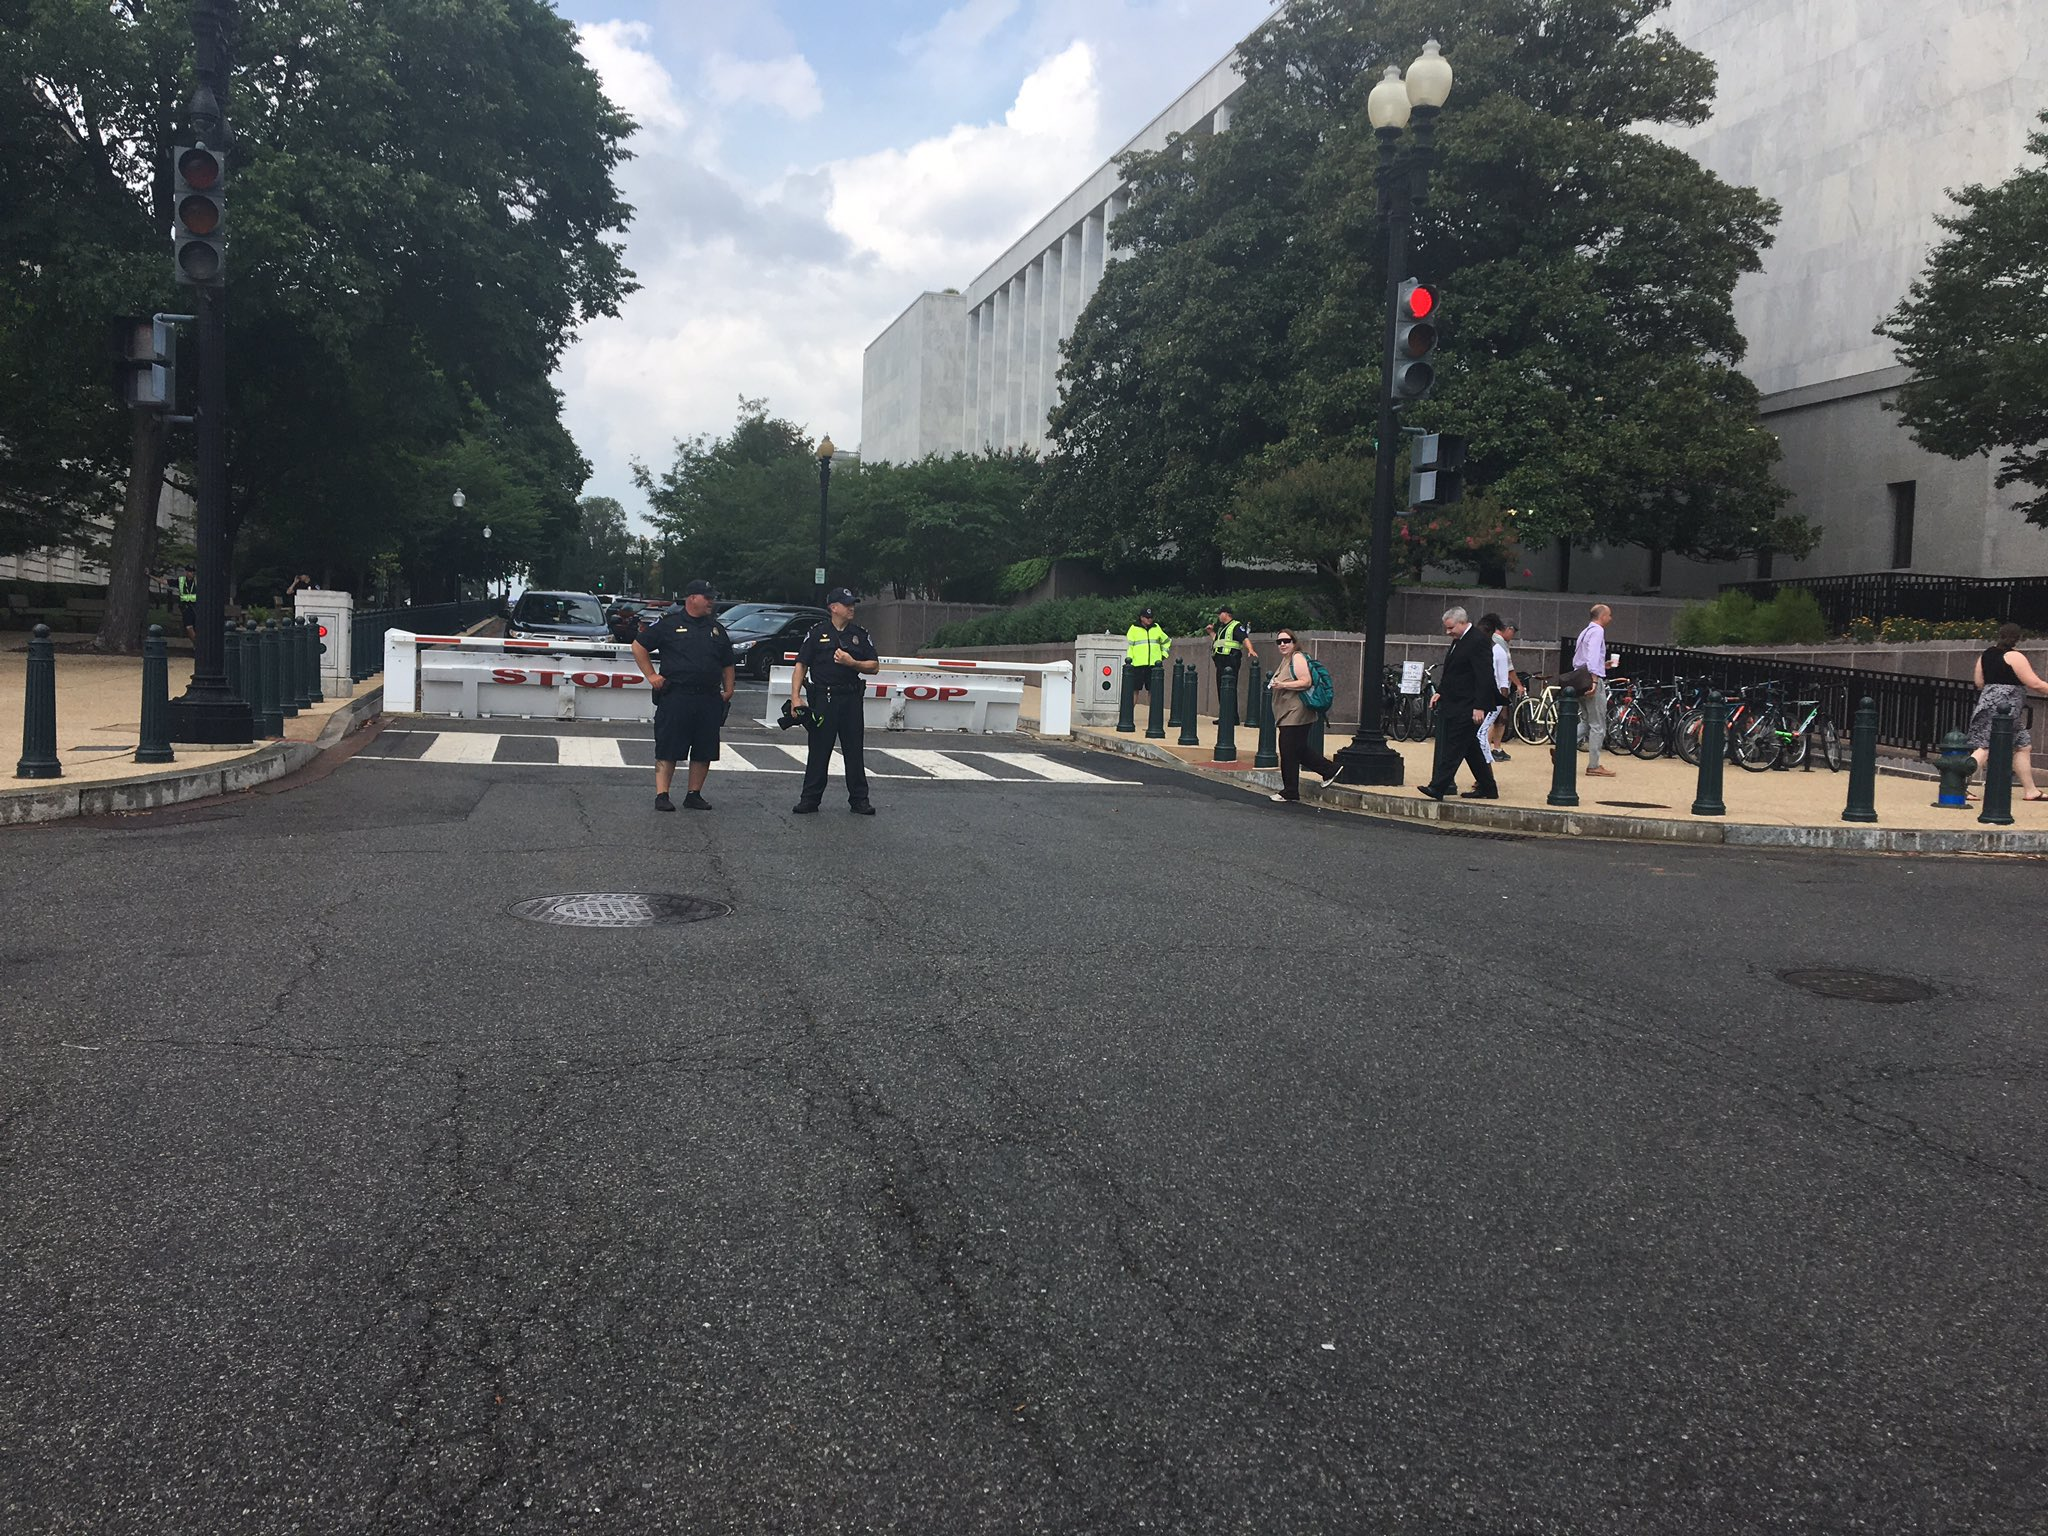 Roads blocked and lockdowns due to vehicle incident near U.S. Capitol, Monday, July 17, 2017 (Nathan Baca/ABC7)